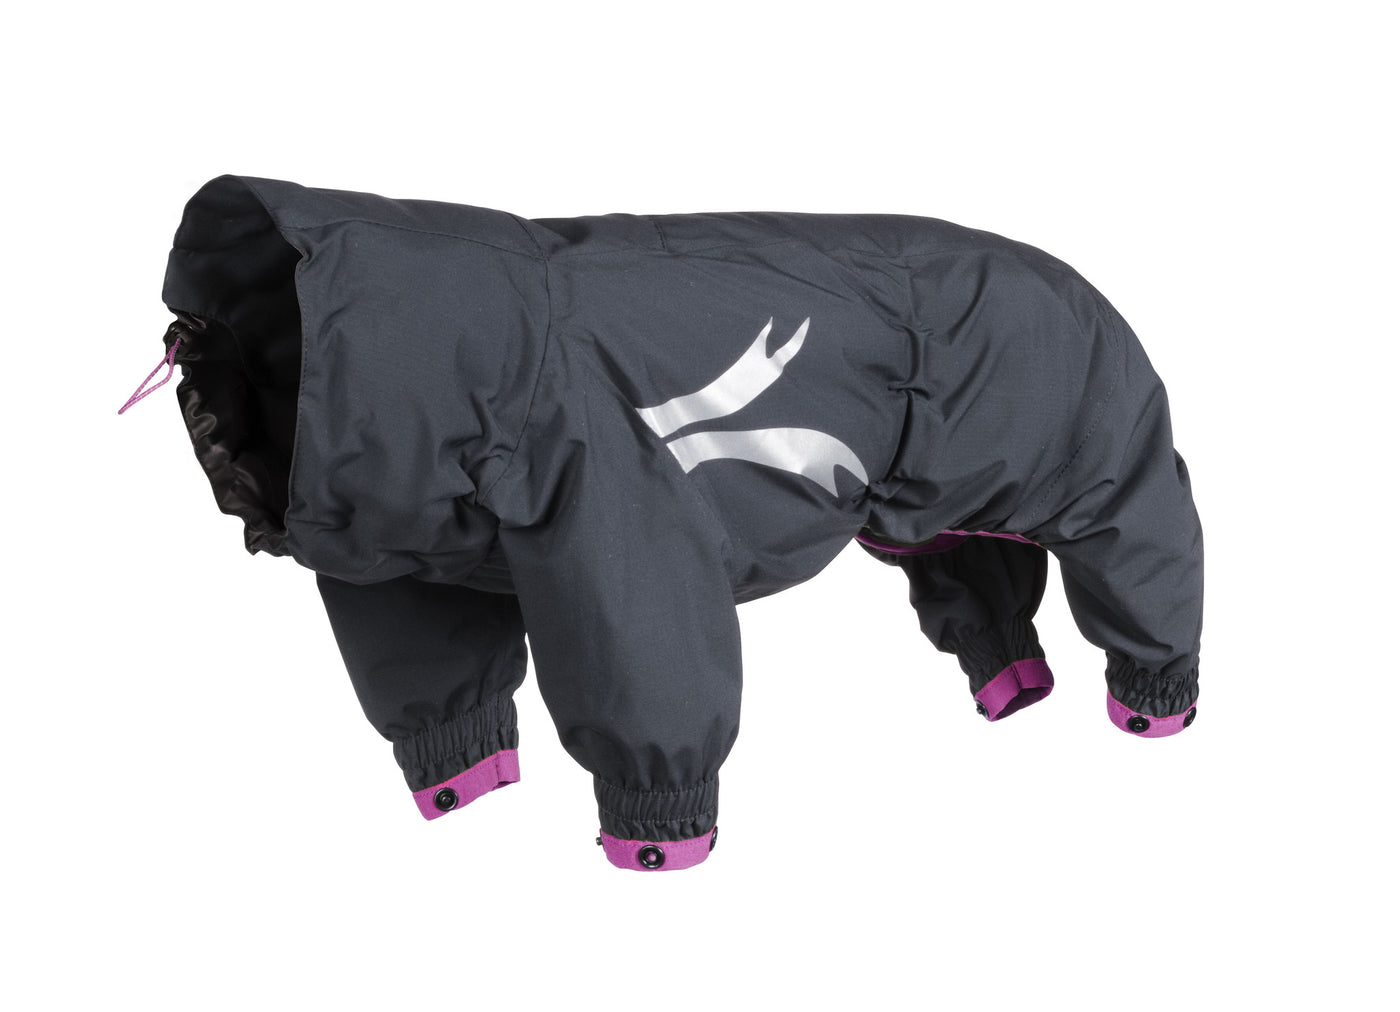 Slush Combat Suit Dog Rain Jacket & Raincoat by Hurtta